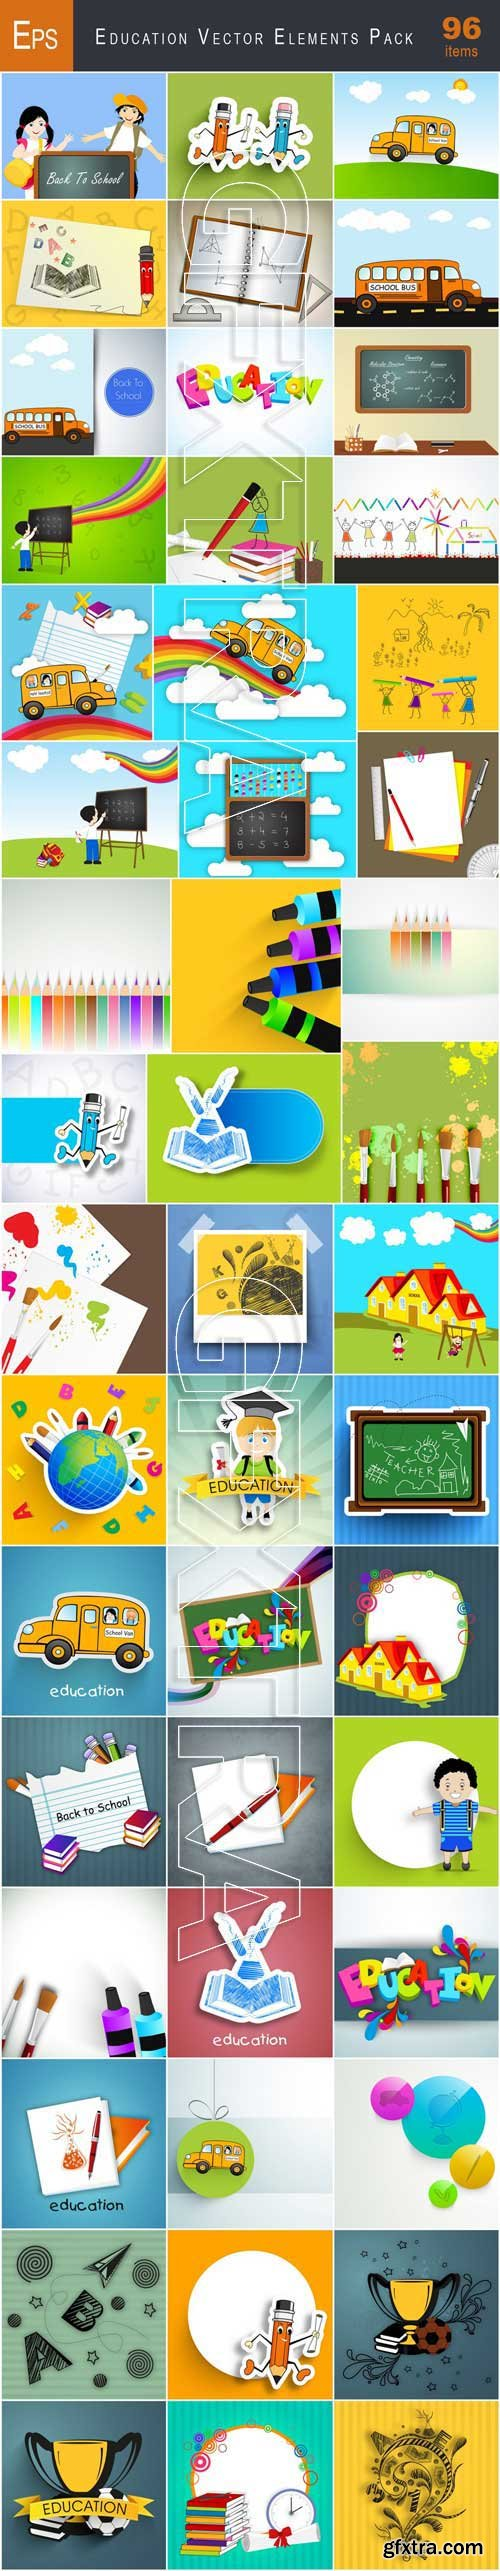 VectorCity Education Vector Elements Pack